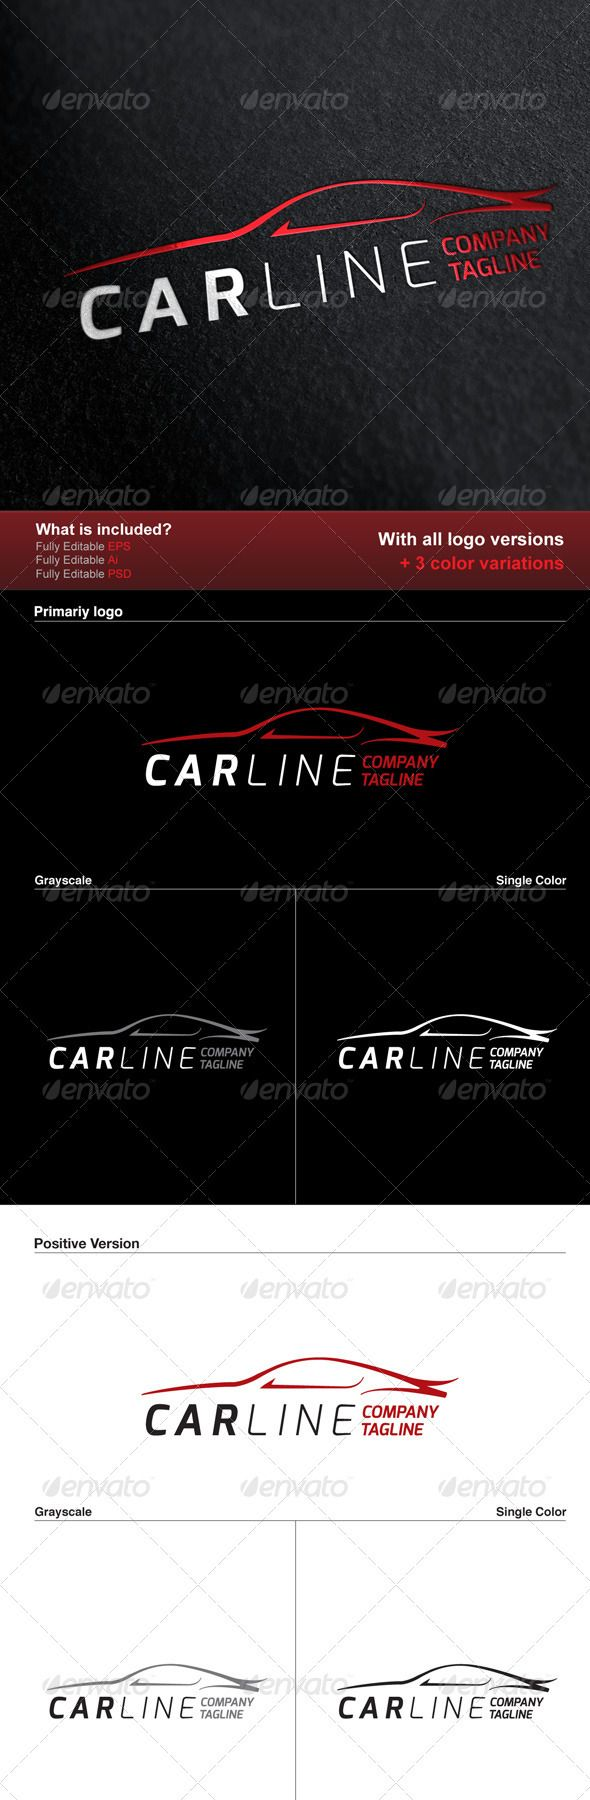 This is a professional Designed Logo. This is great for a Mechanic, Car Stand / Dealer, Car Service Company, etc. Fully and easilly layered, in full resolution print ready, vector and image version included.